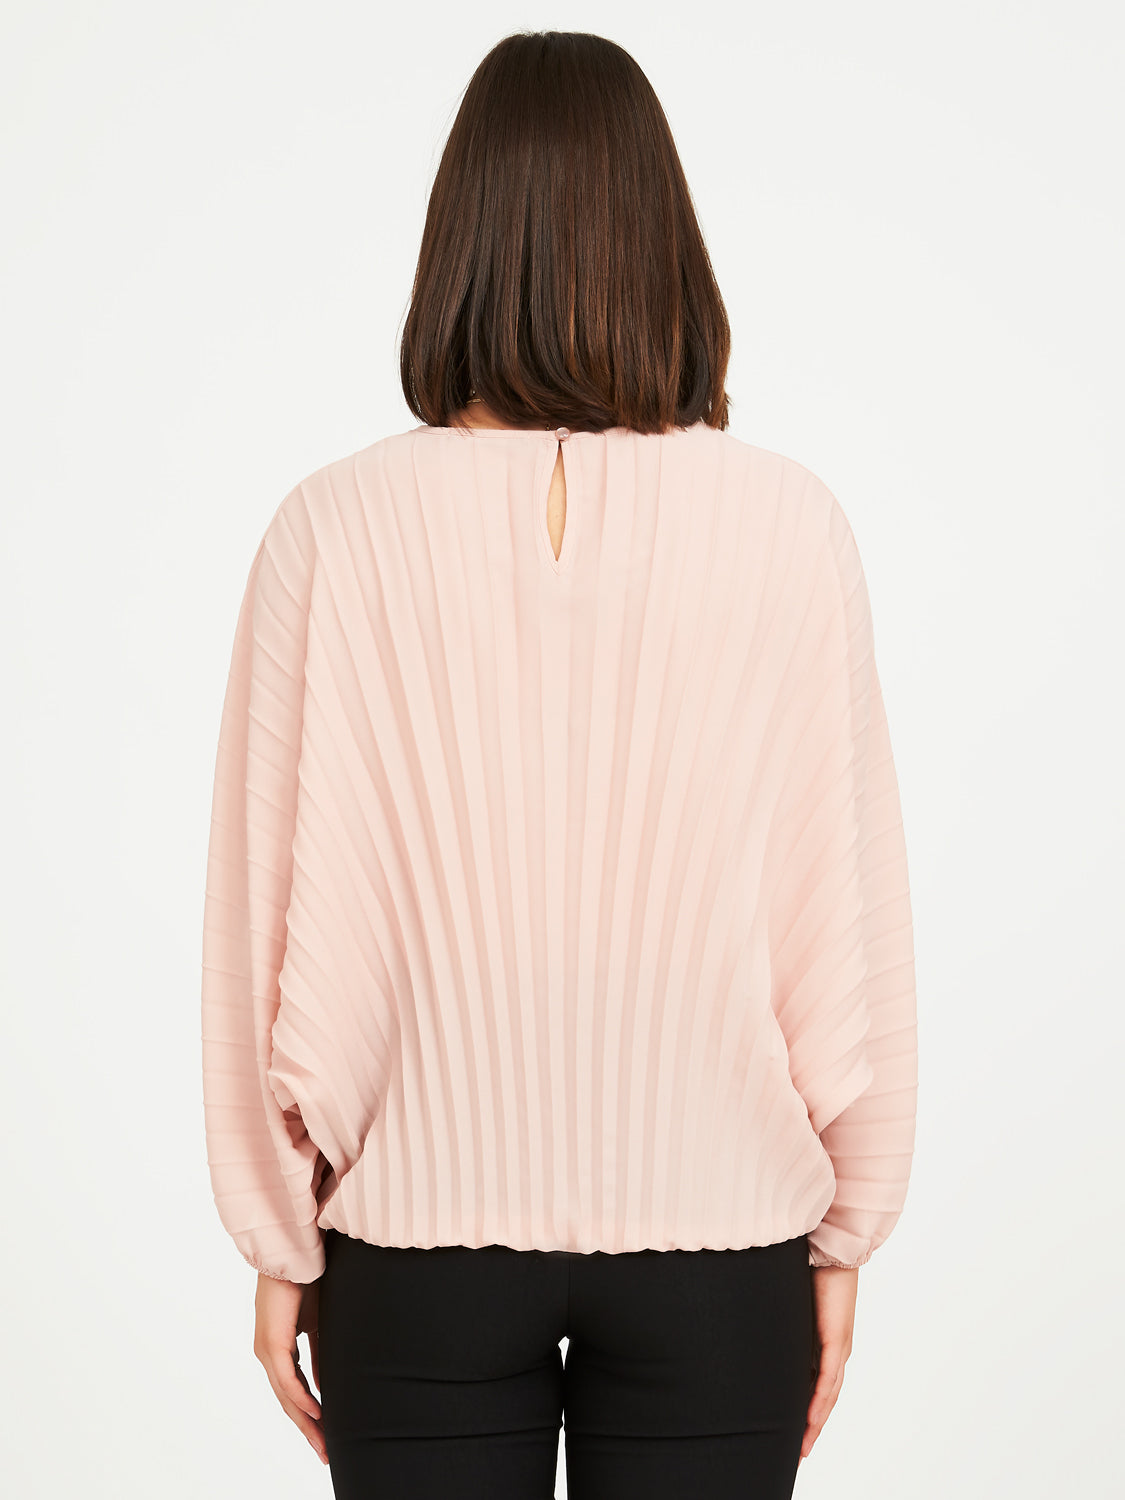 Starburst Pleat Chiffon Blouse